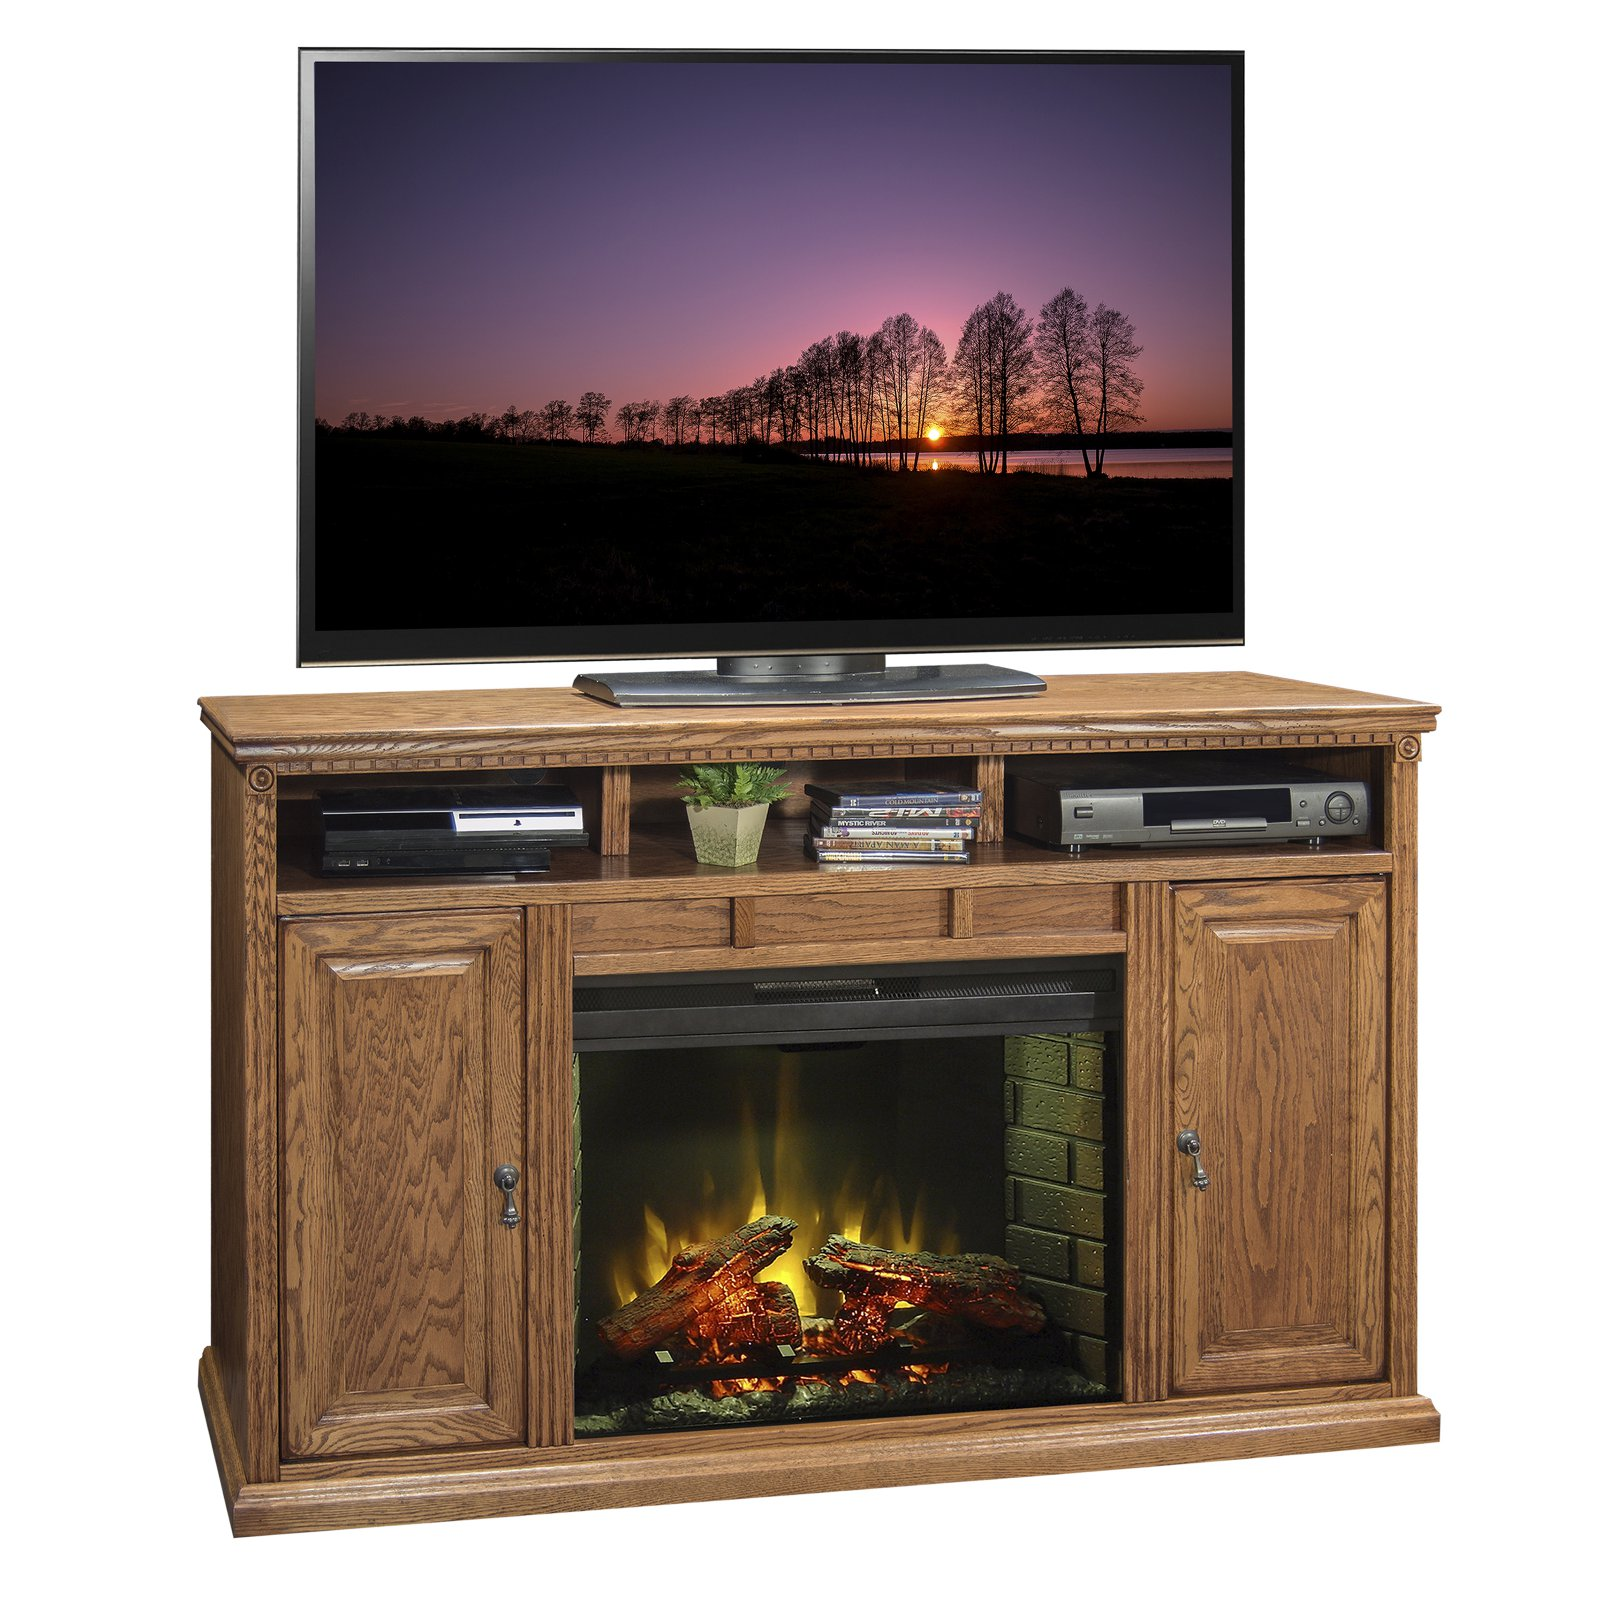 Legends Furniture Scottsdale 63 in. Electric Media Fireplace